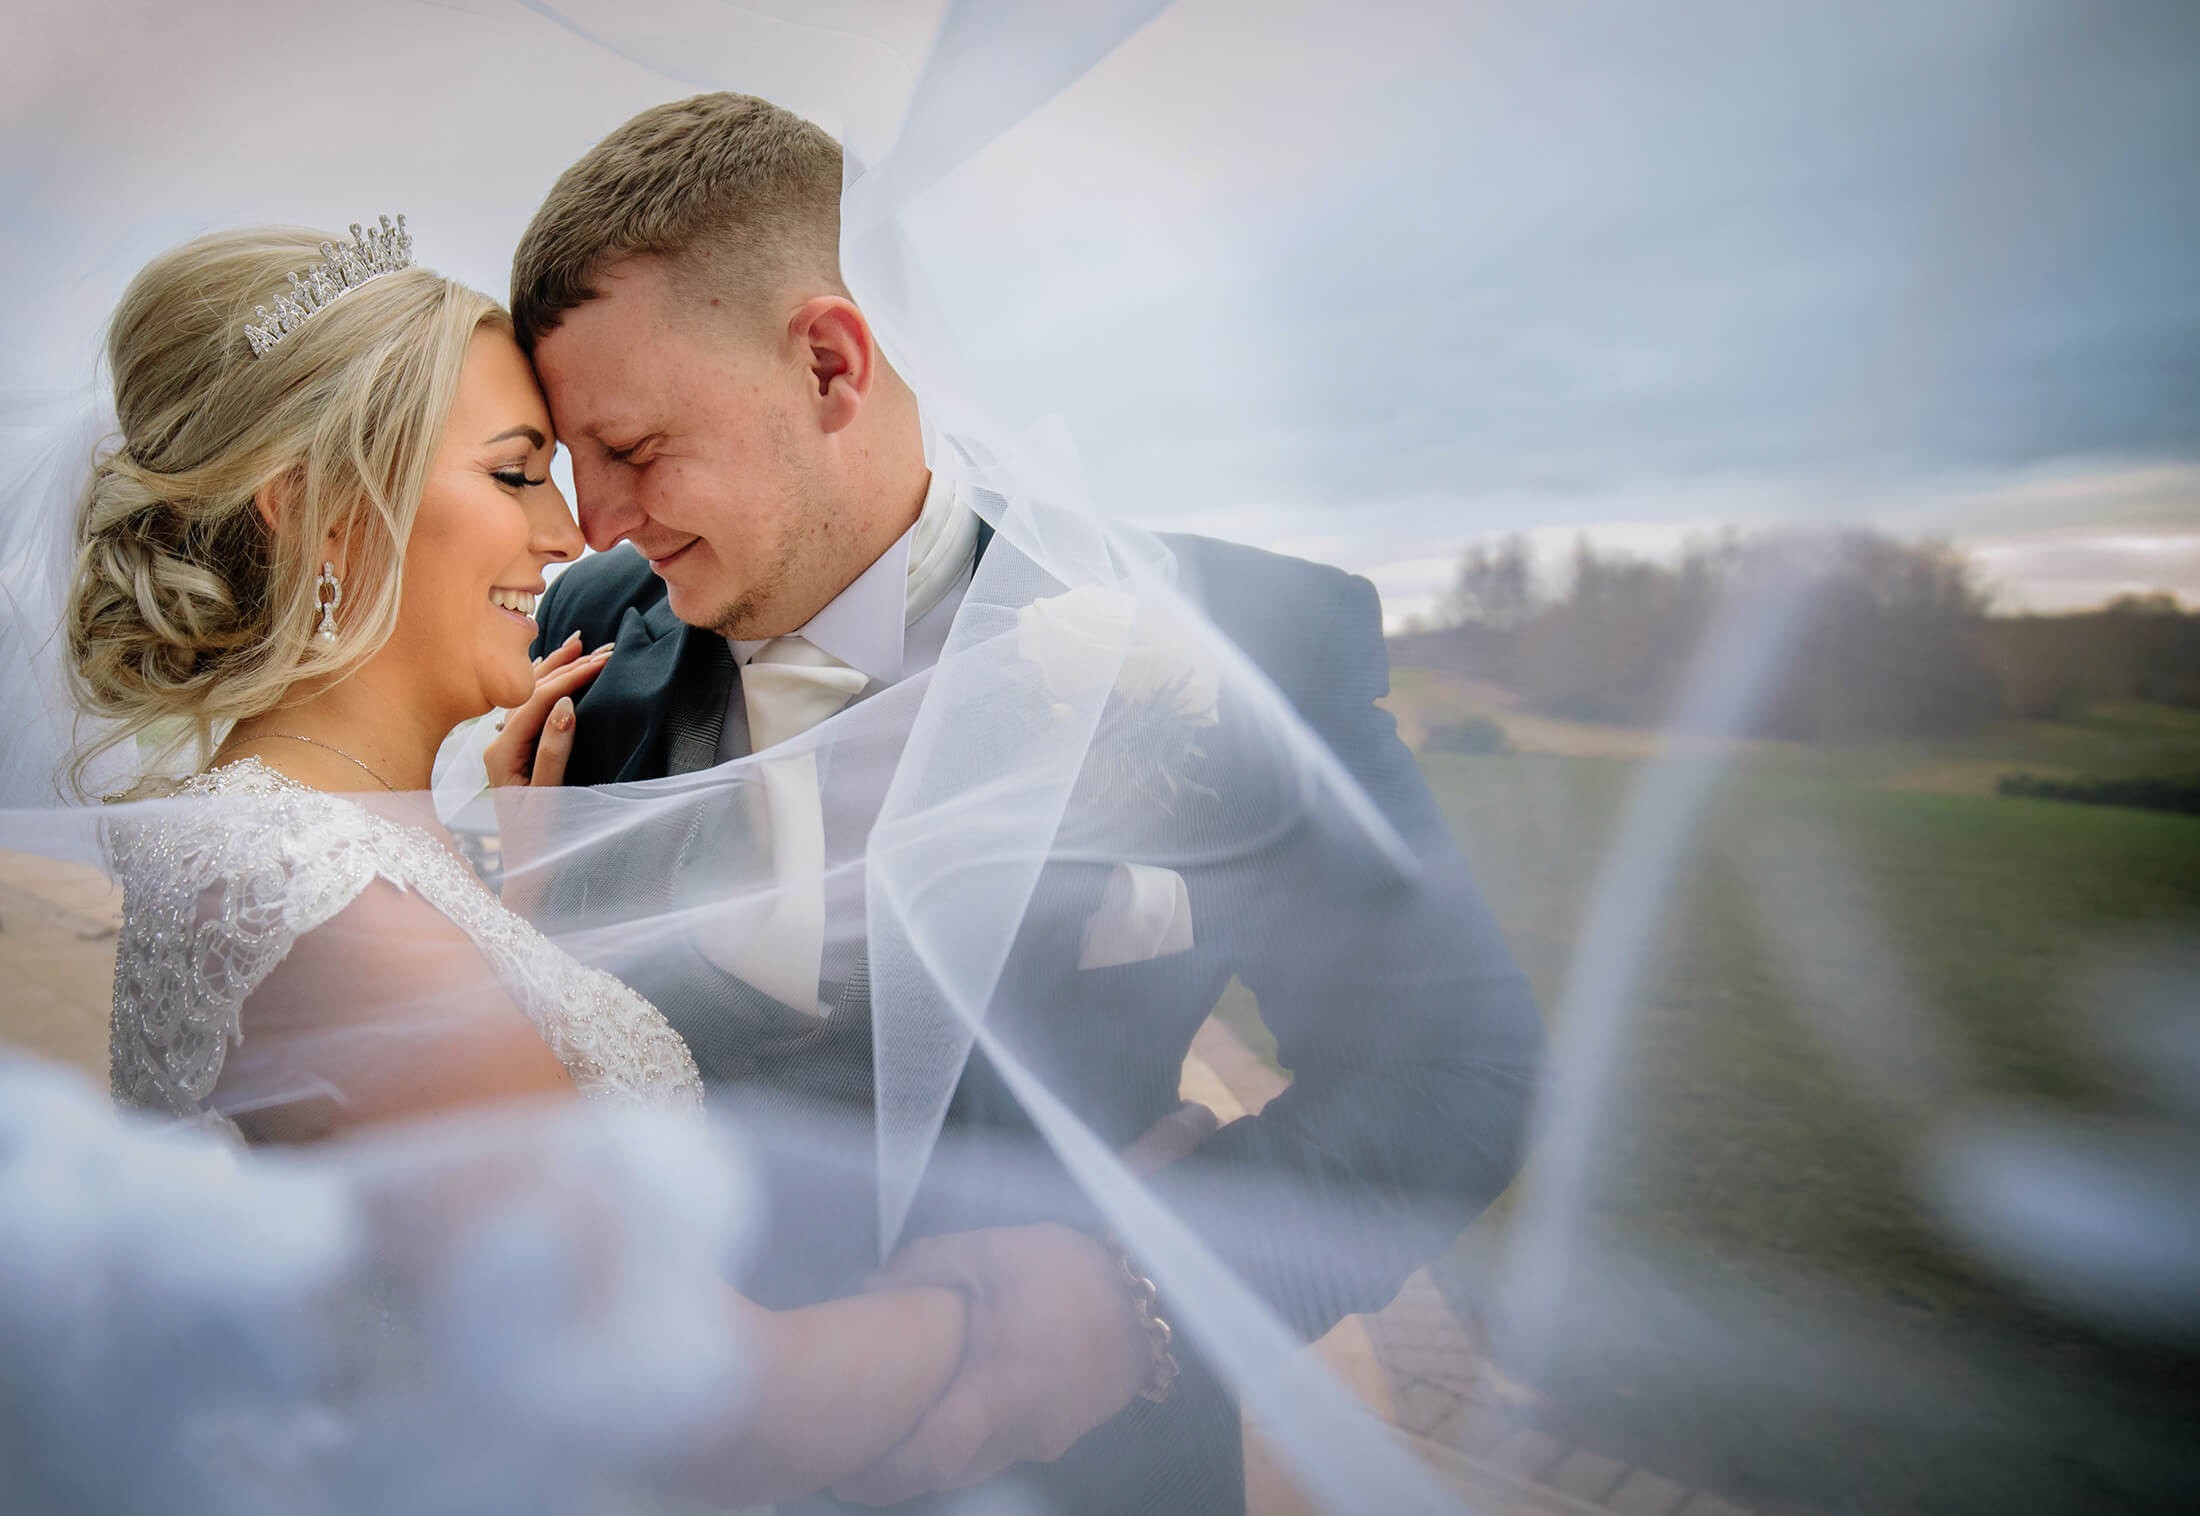 The bride snd groom are wrapped in the brides veil. Wychwood Park wedding photographer